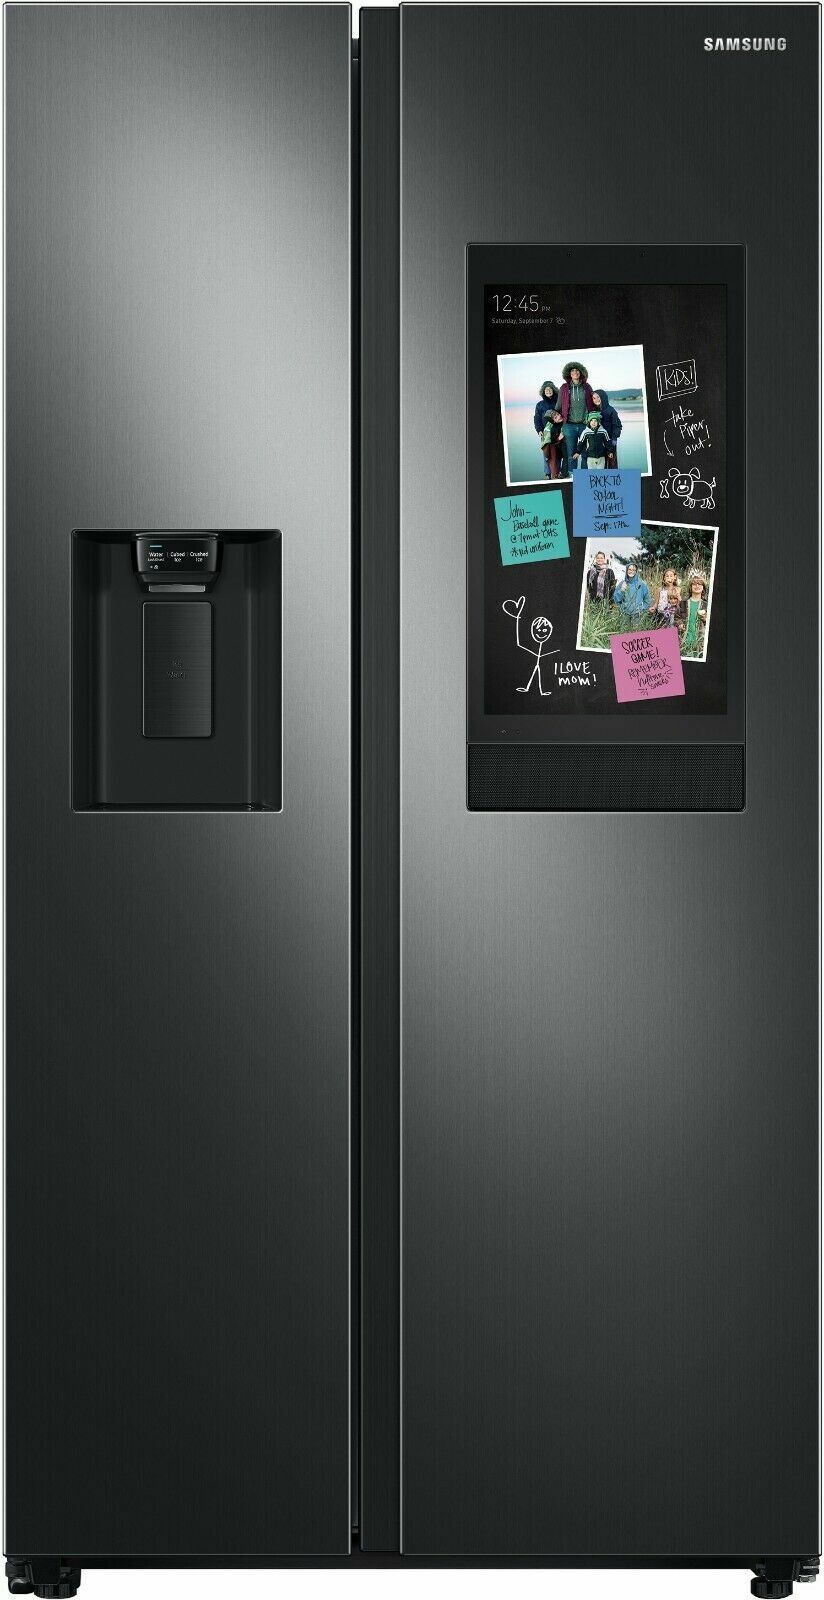 Smart Refrigerator 36 Inch Counter Depth Side by Side